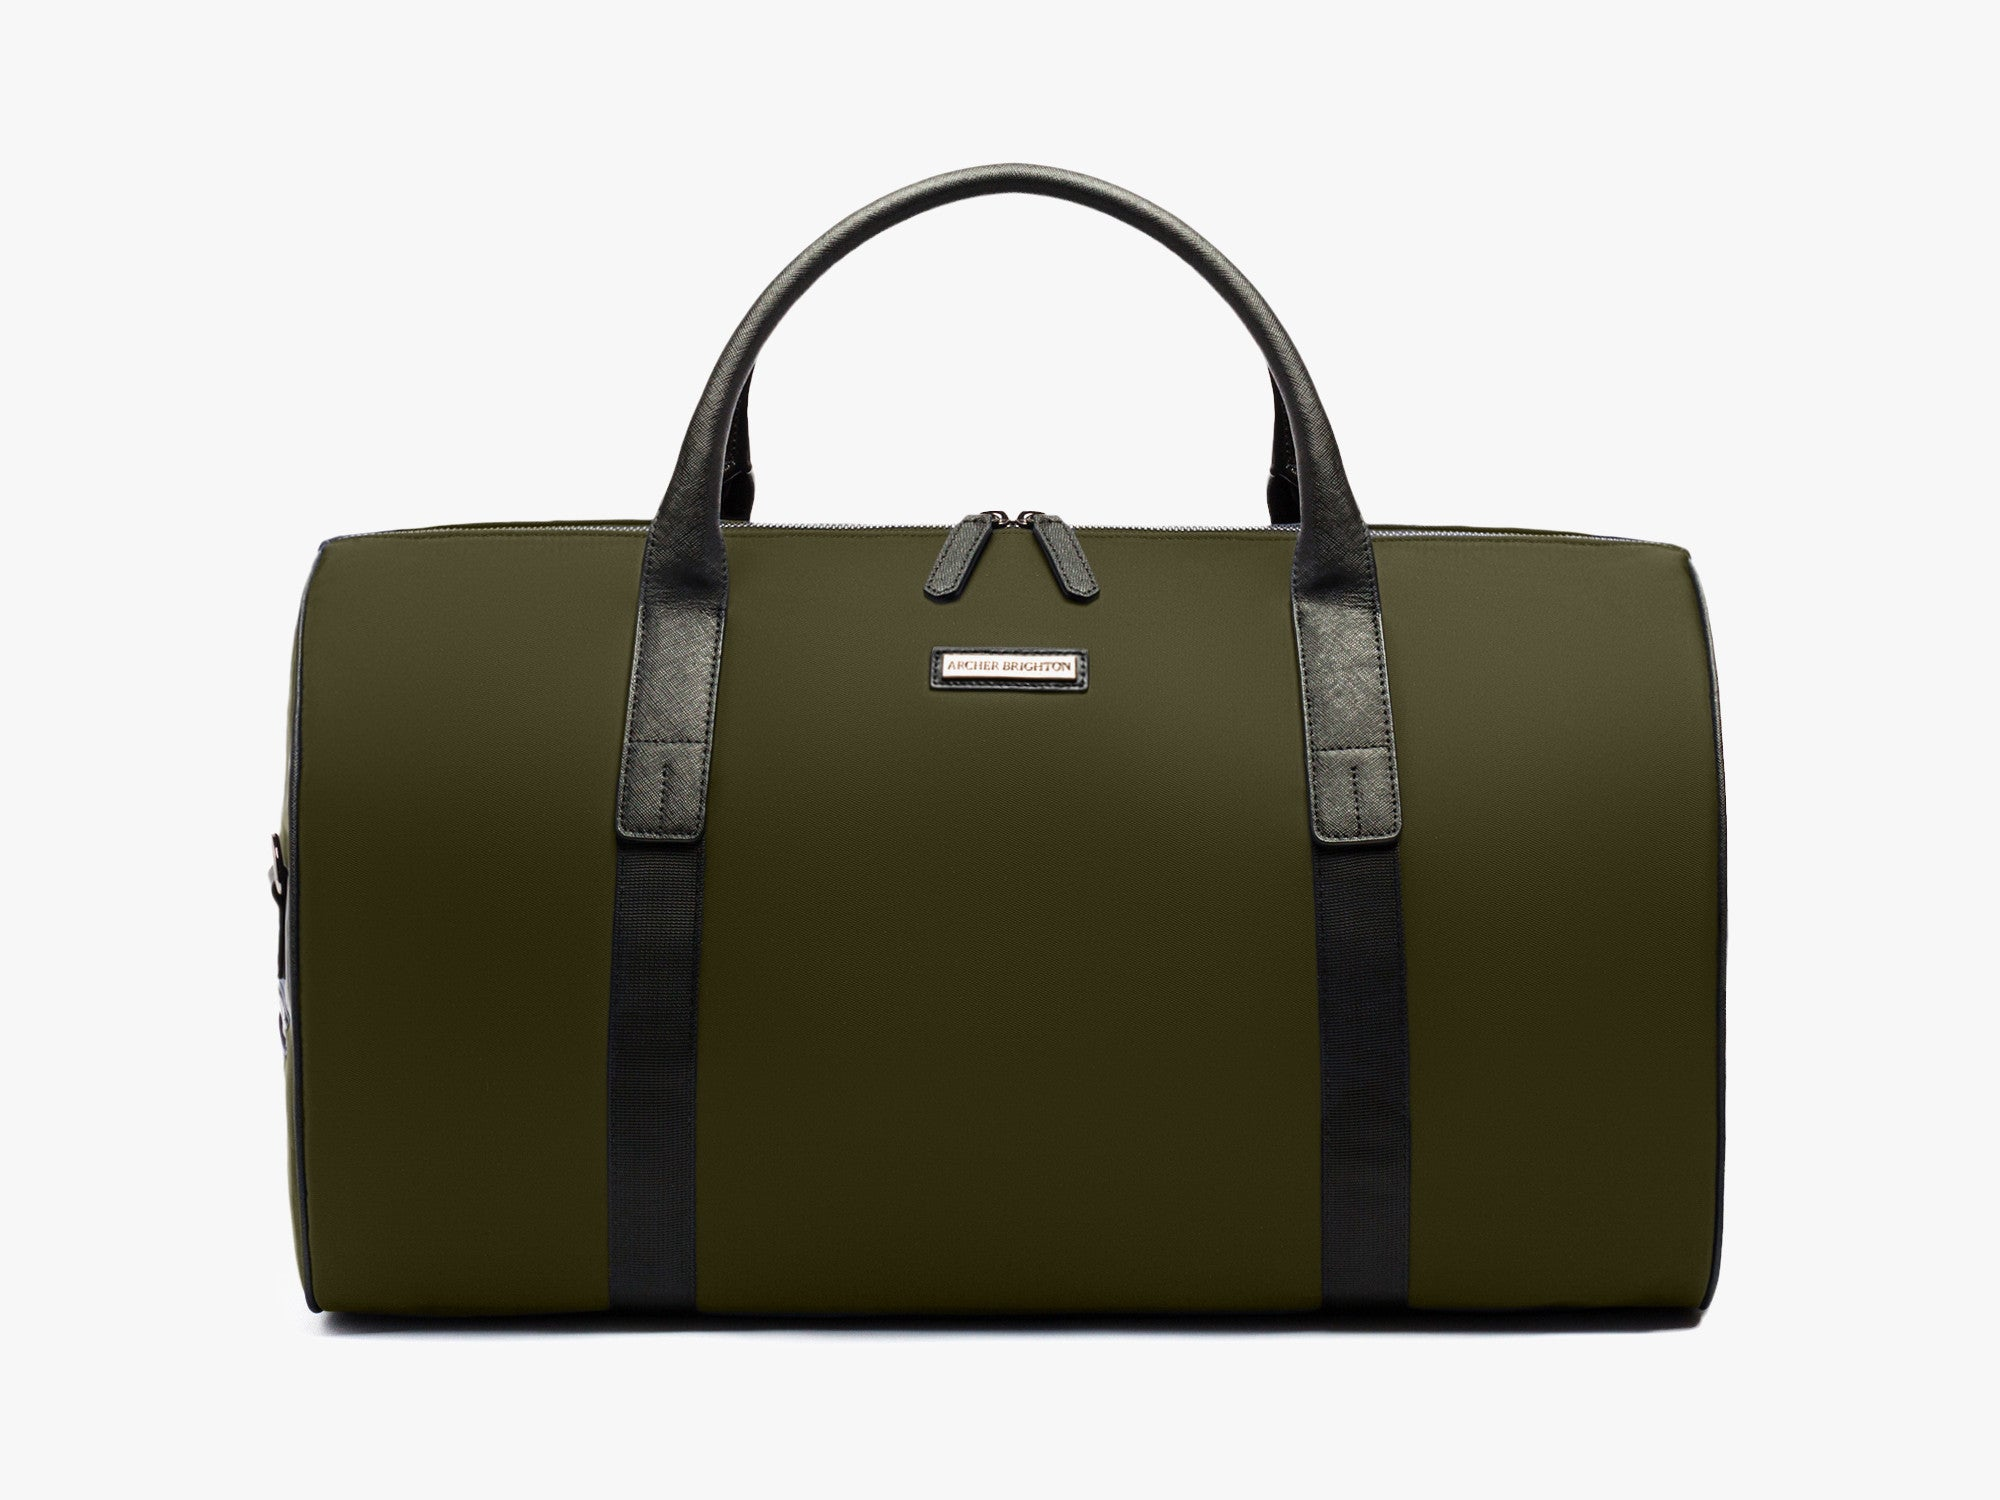 THE MIDWAY CARGO DUFFEL